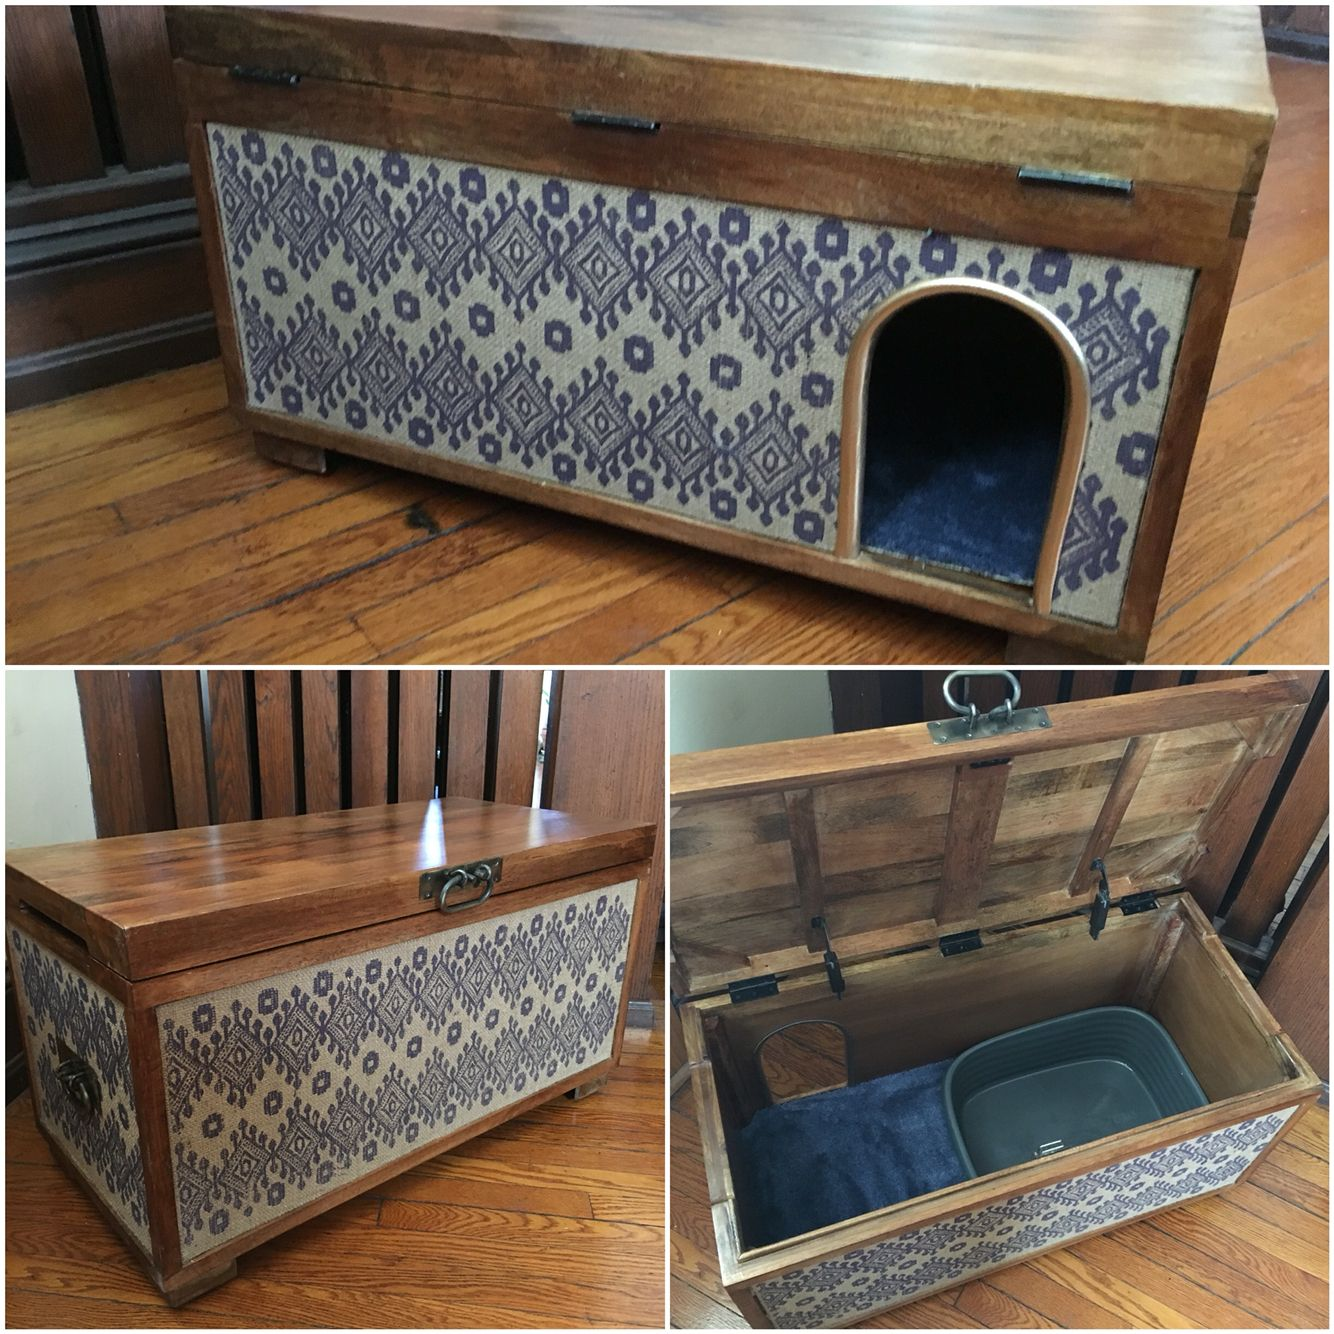 Cutest way to hide cat litter box my husband and i made